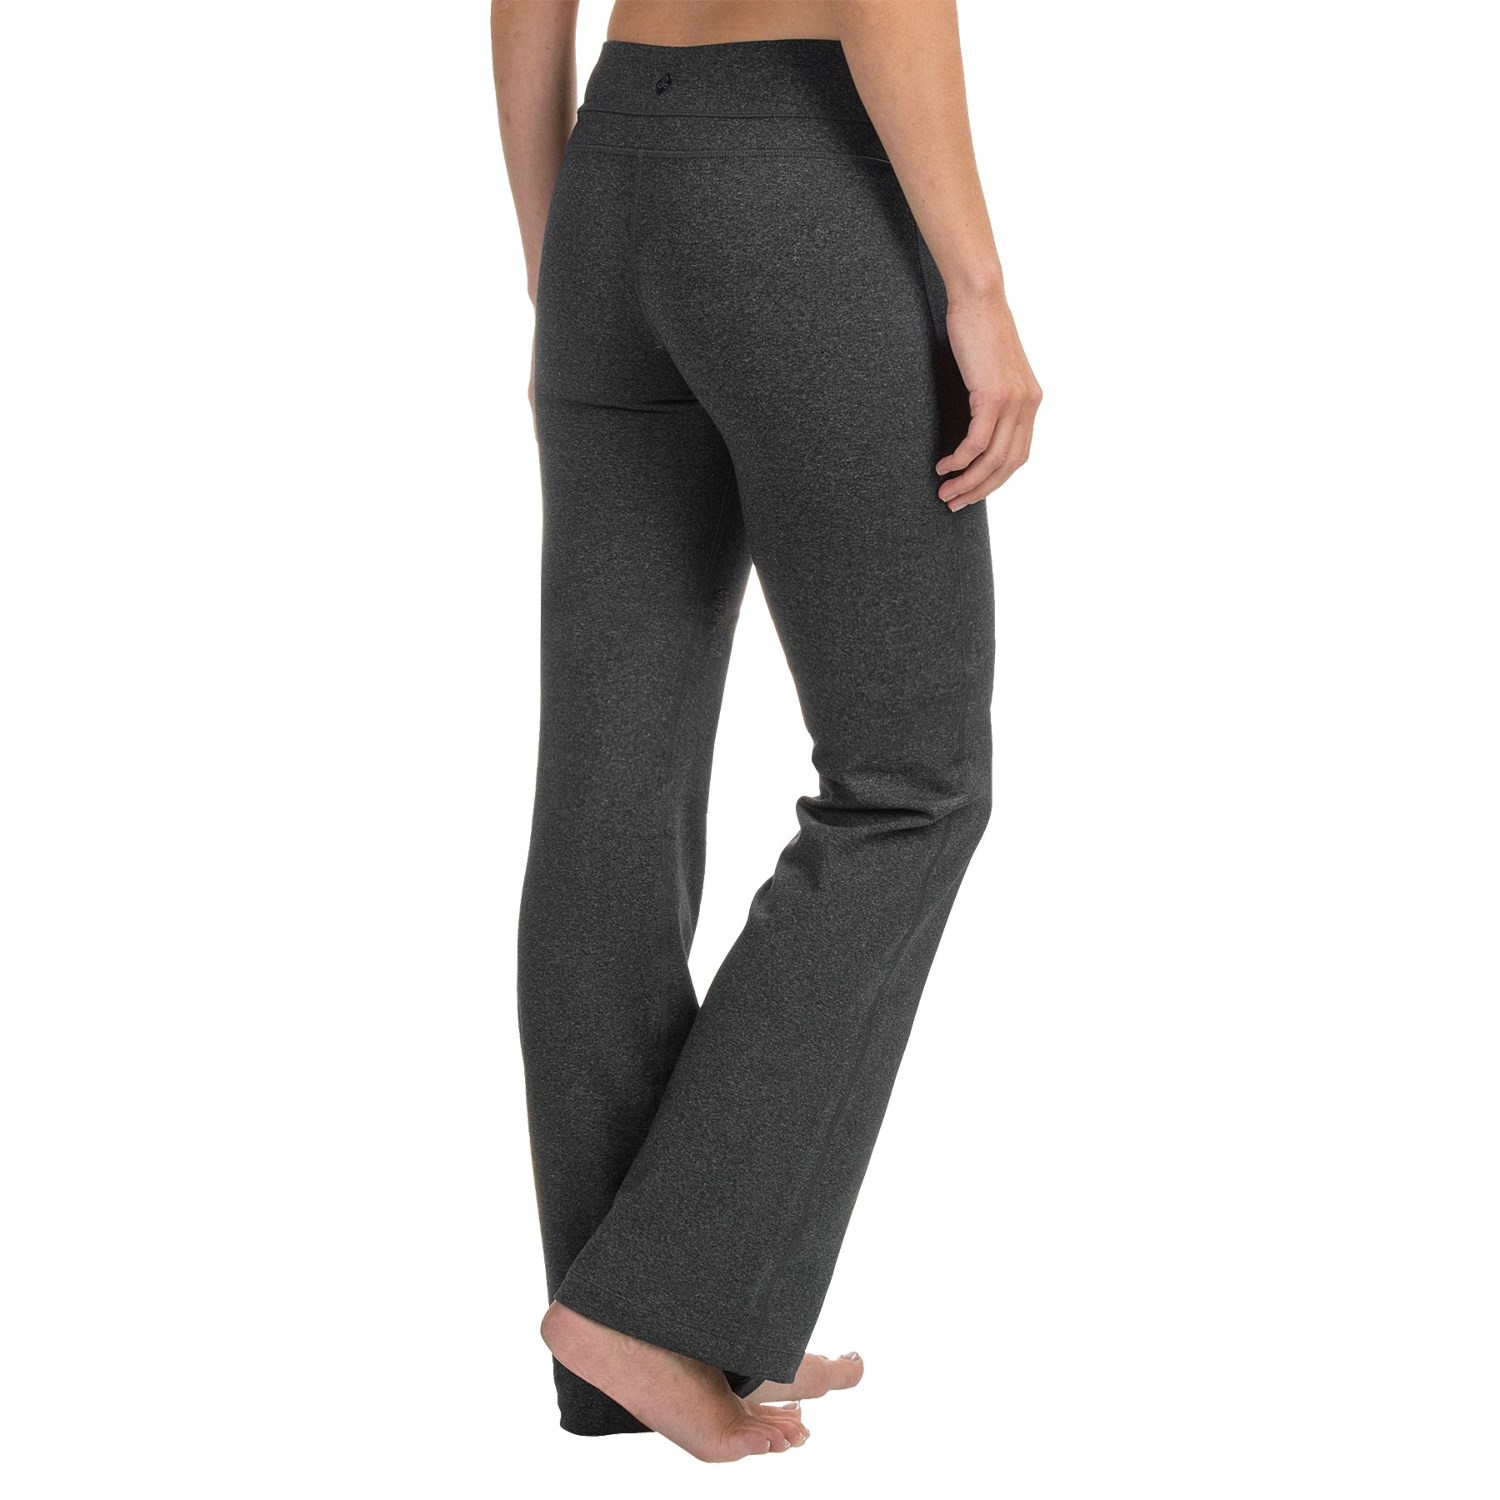 Tall Ponte Knit Pants For Every Size